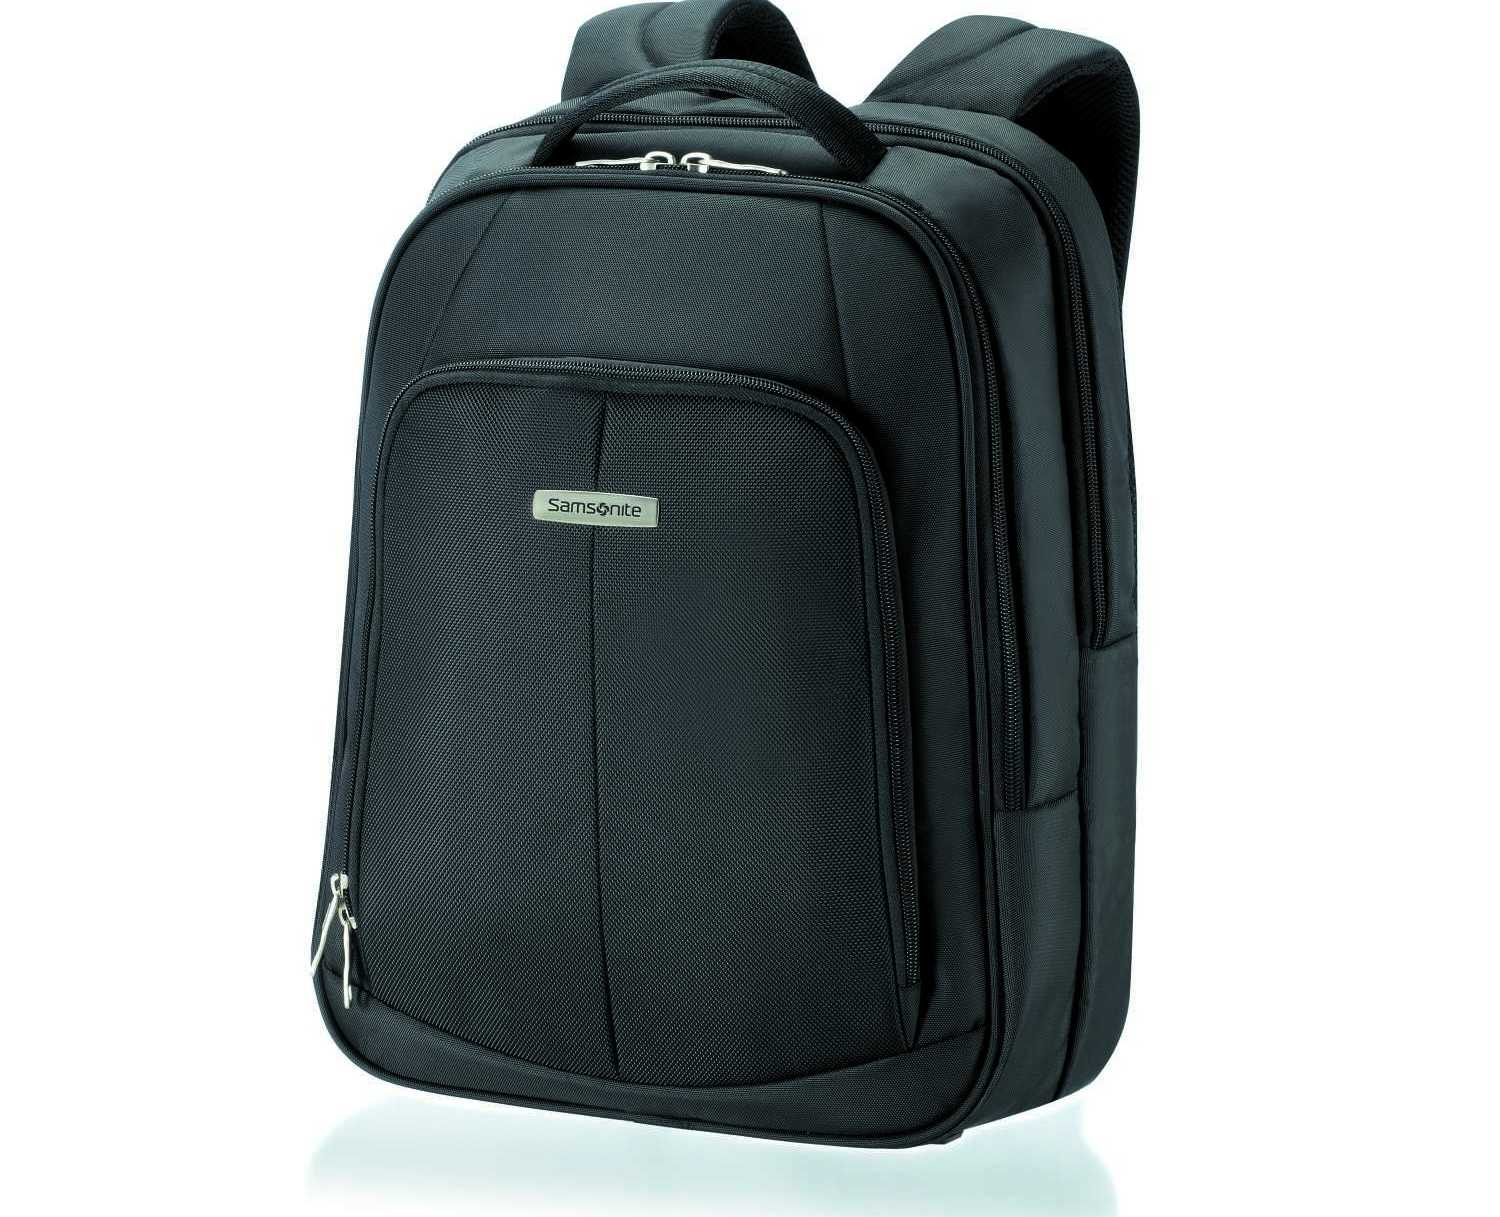 SAMSONITE - Unisex τσάντα πλάτης INTELLIO LAPTOP BACKPACK 16 μαύρη